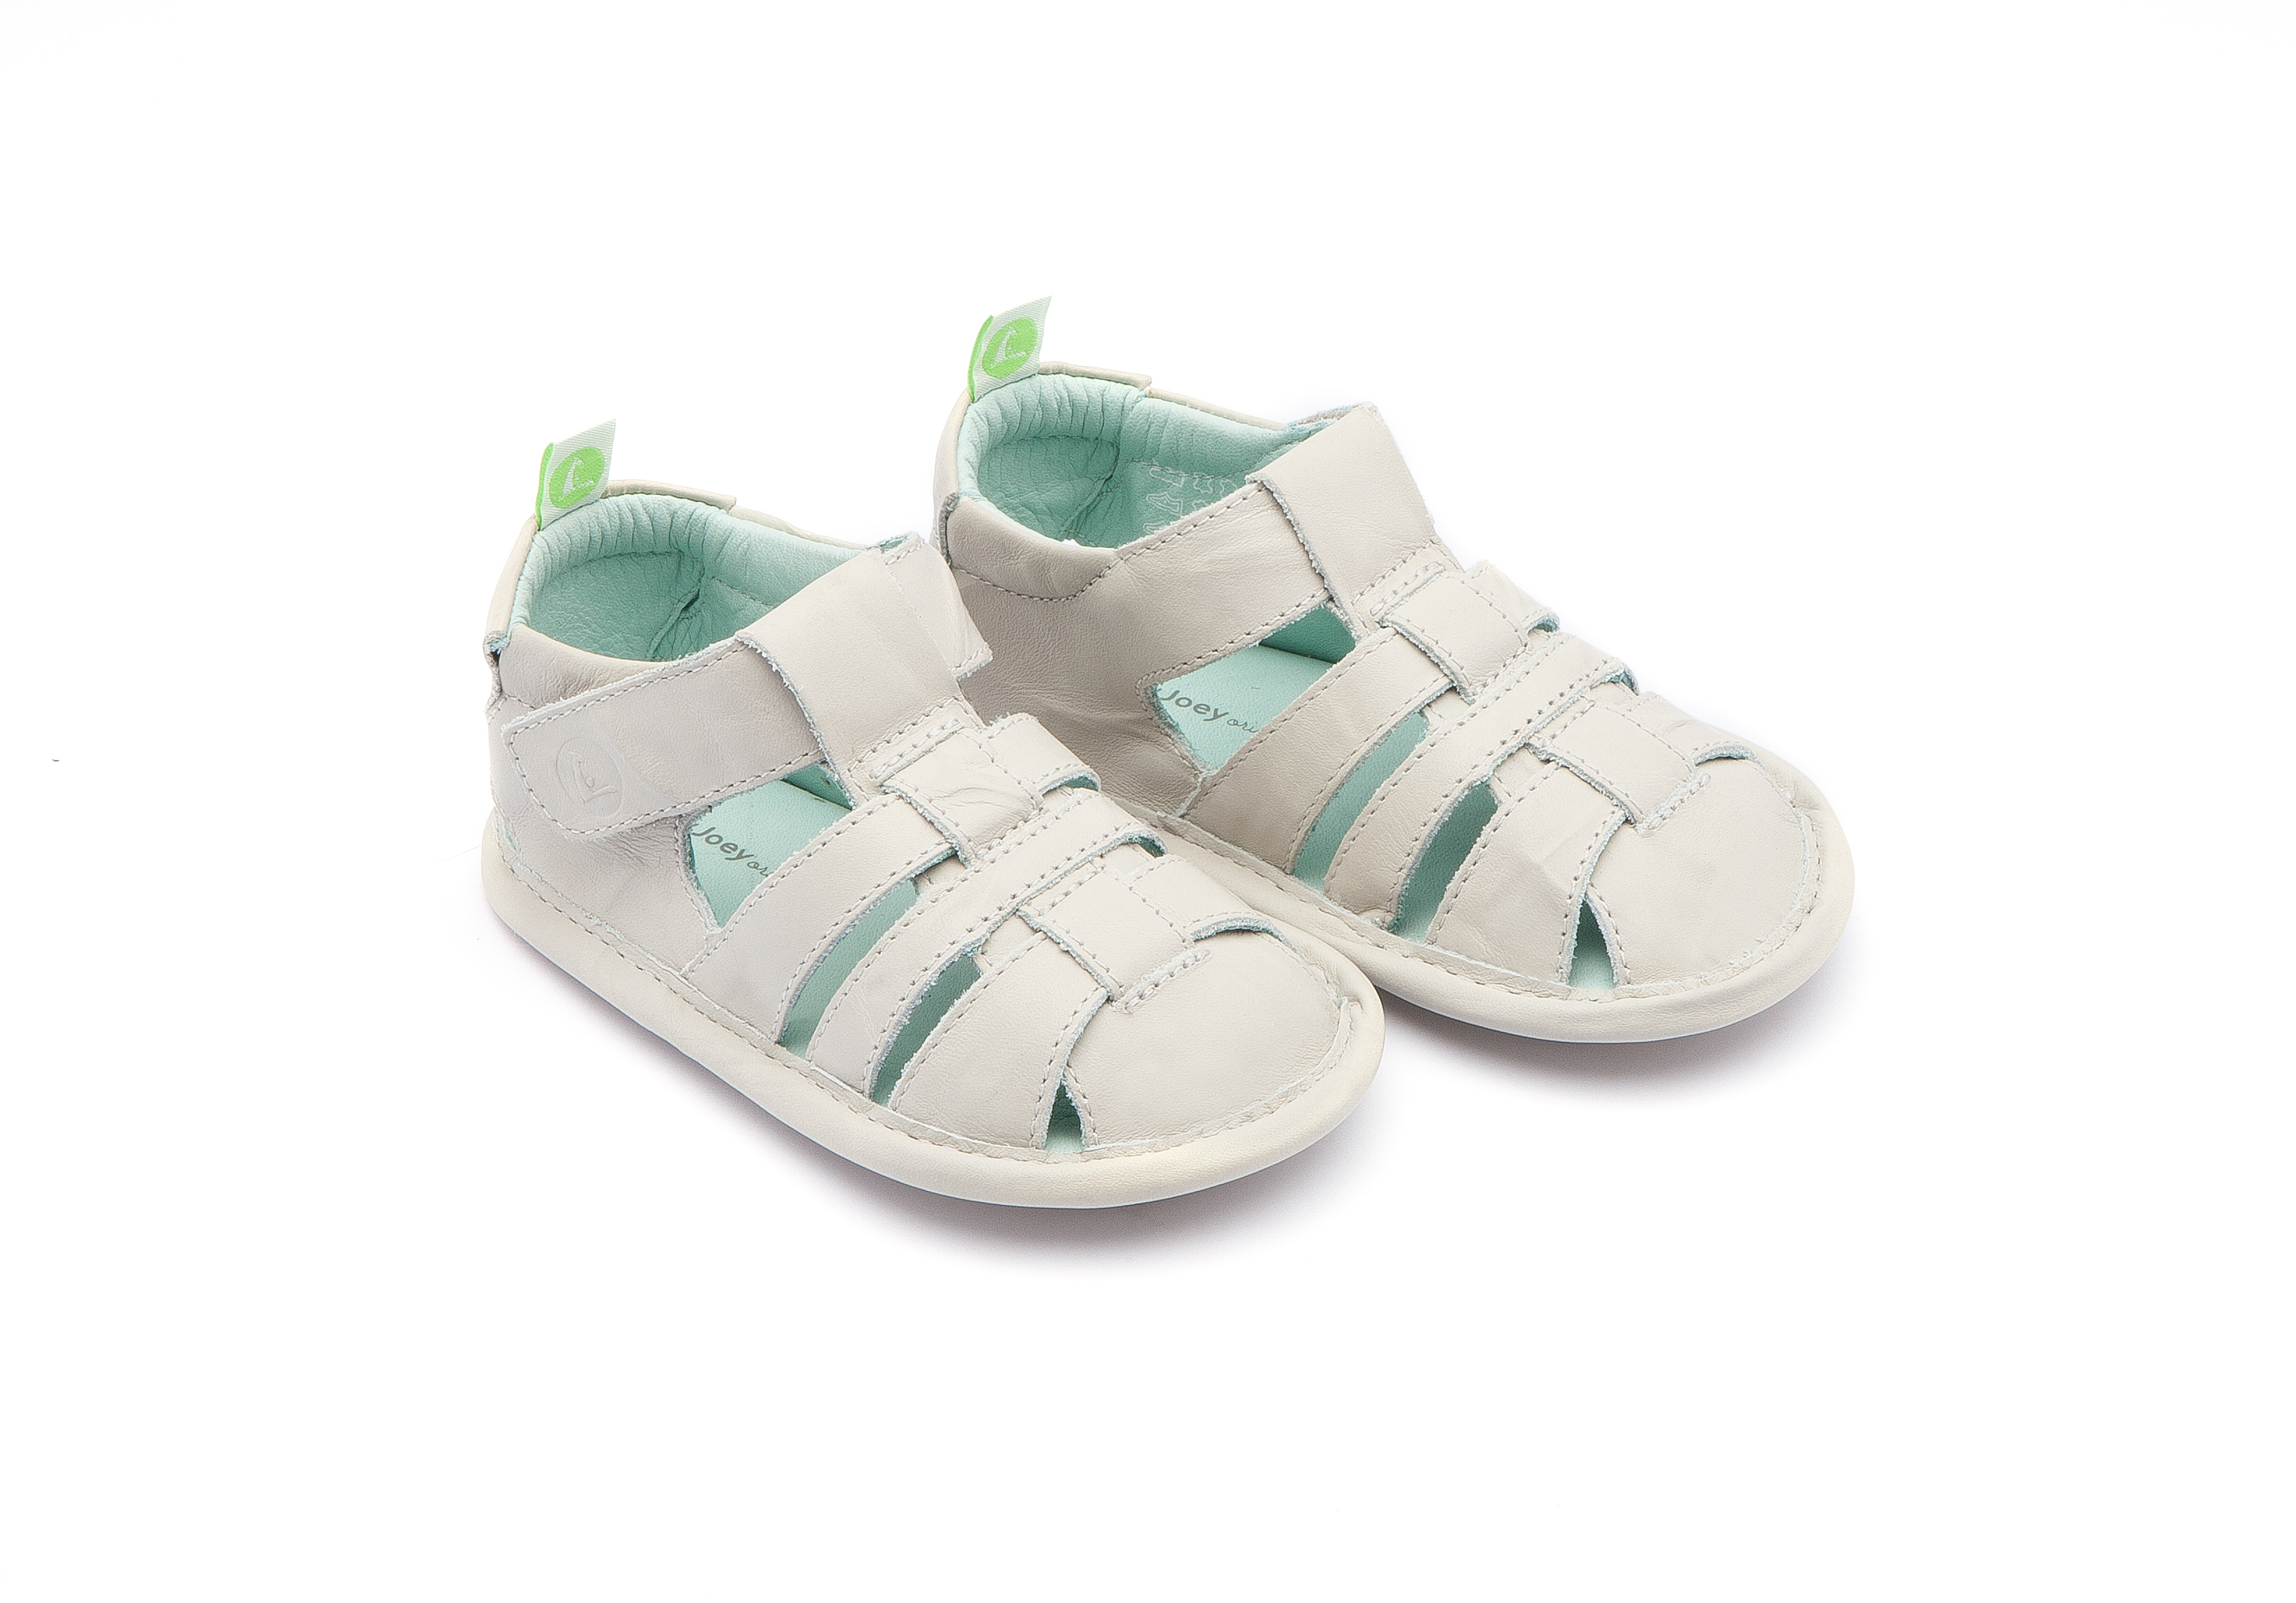 280a0f0c2 Baby Shoes | Sandals | Sandy Size 14 | Tip Toey Joey - Australia